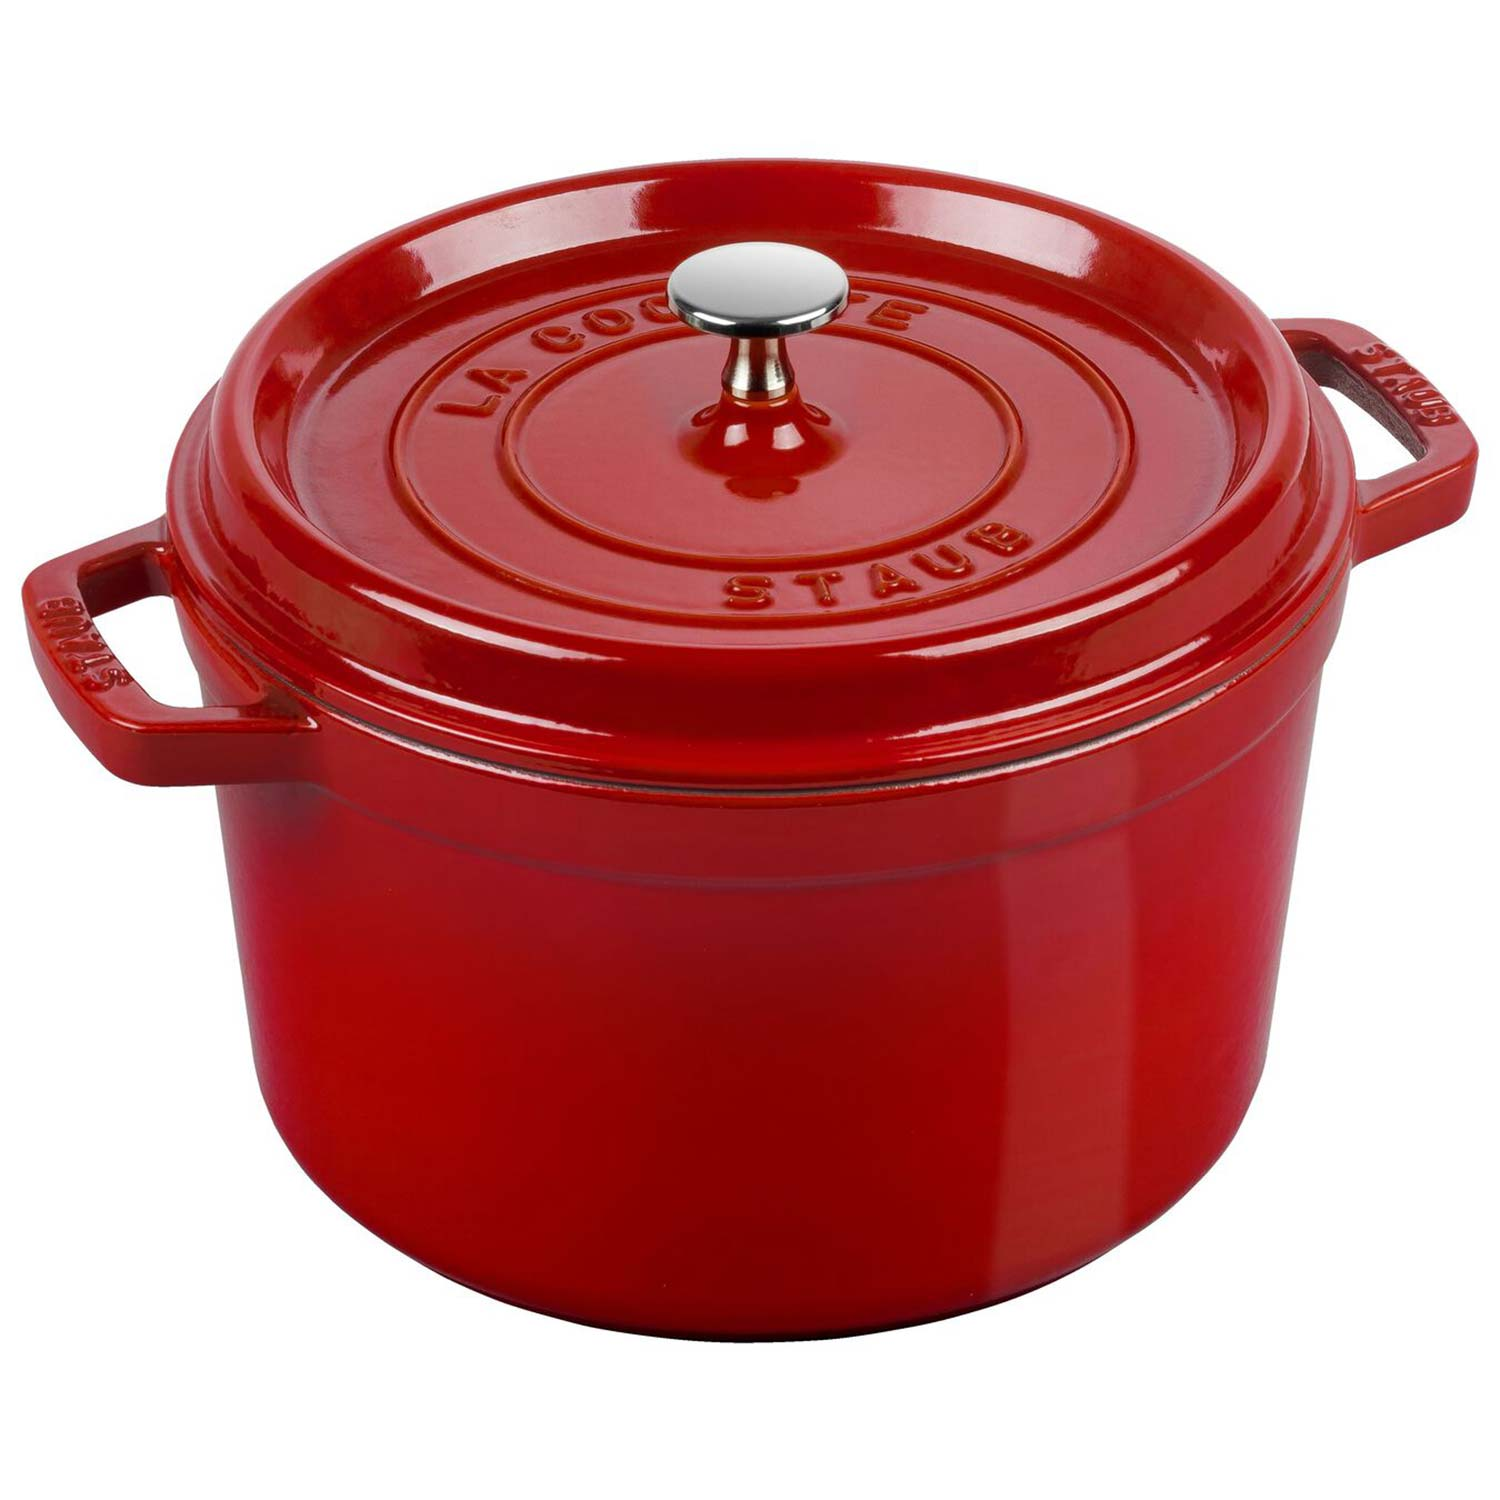 STAUB CAST IRON - TALL COCOTTES 5 QT, ROUND, TALL COCOTTE, CHERRY